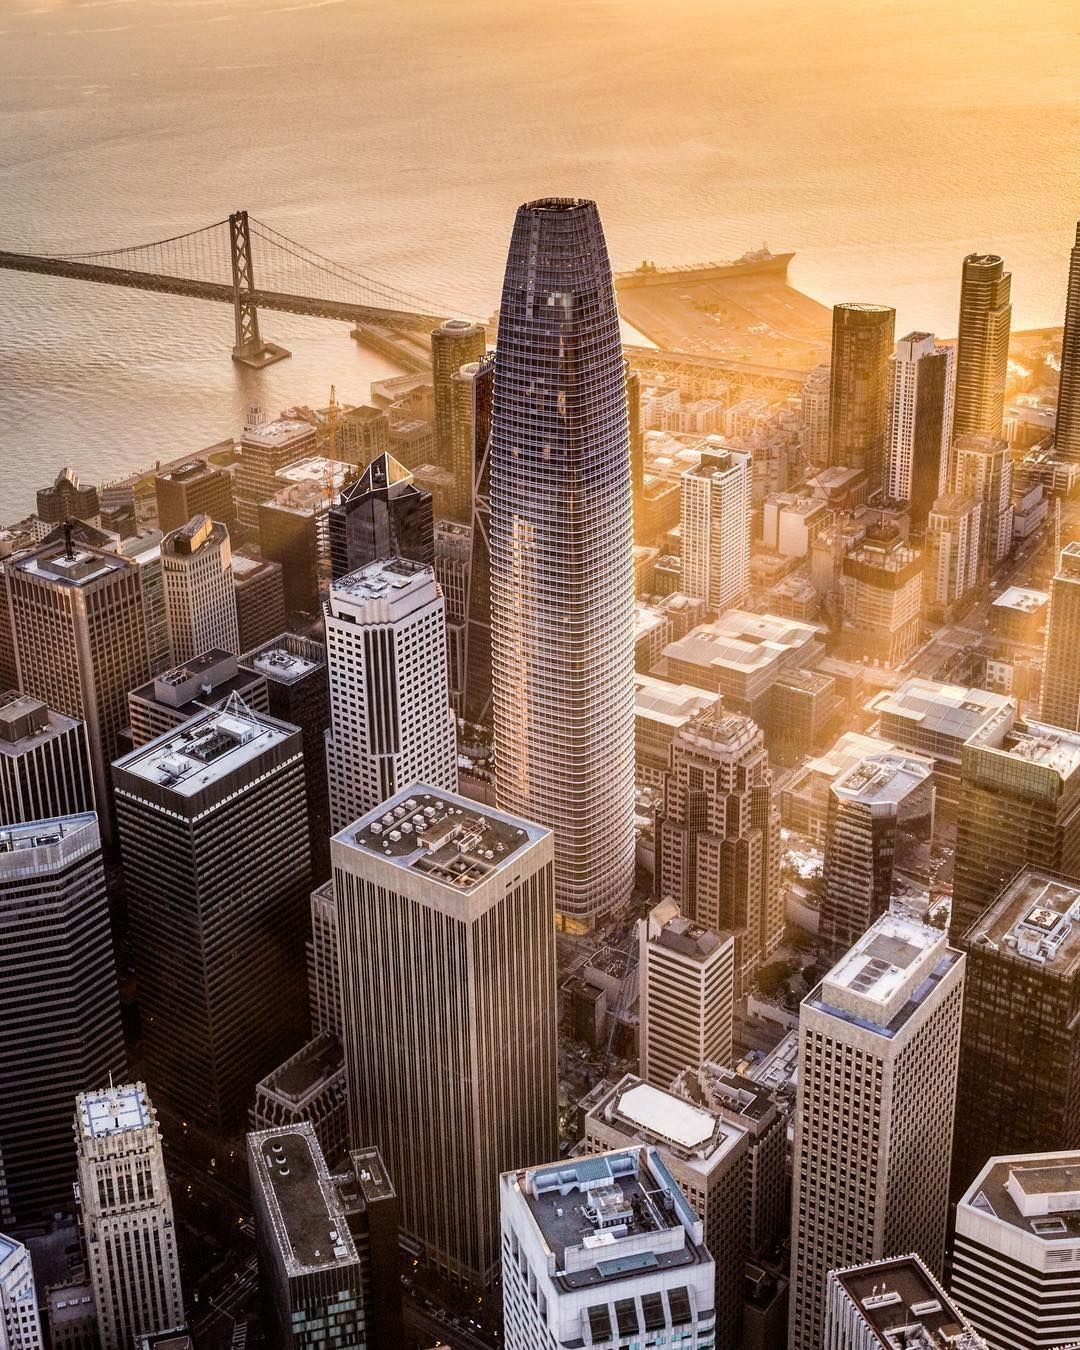 Downtown S Foreman Clark Building To Become 124: San Francisco's Tallest Skyscraper, Designed By Pelli